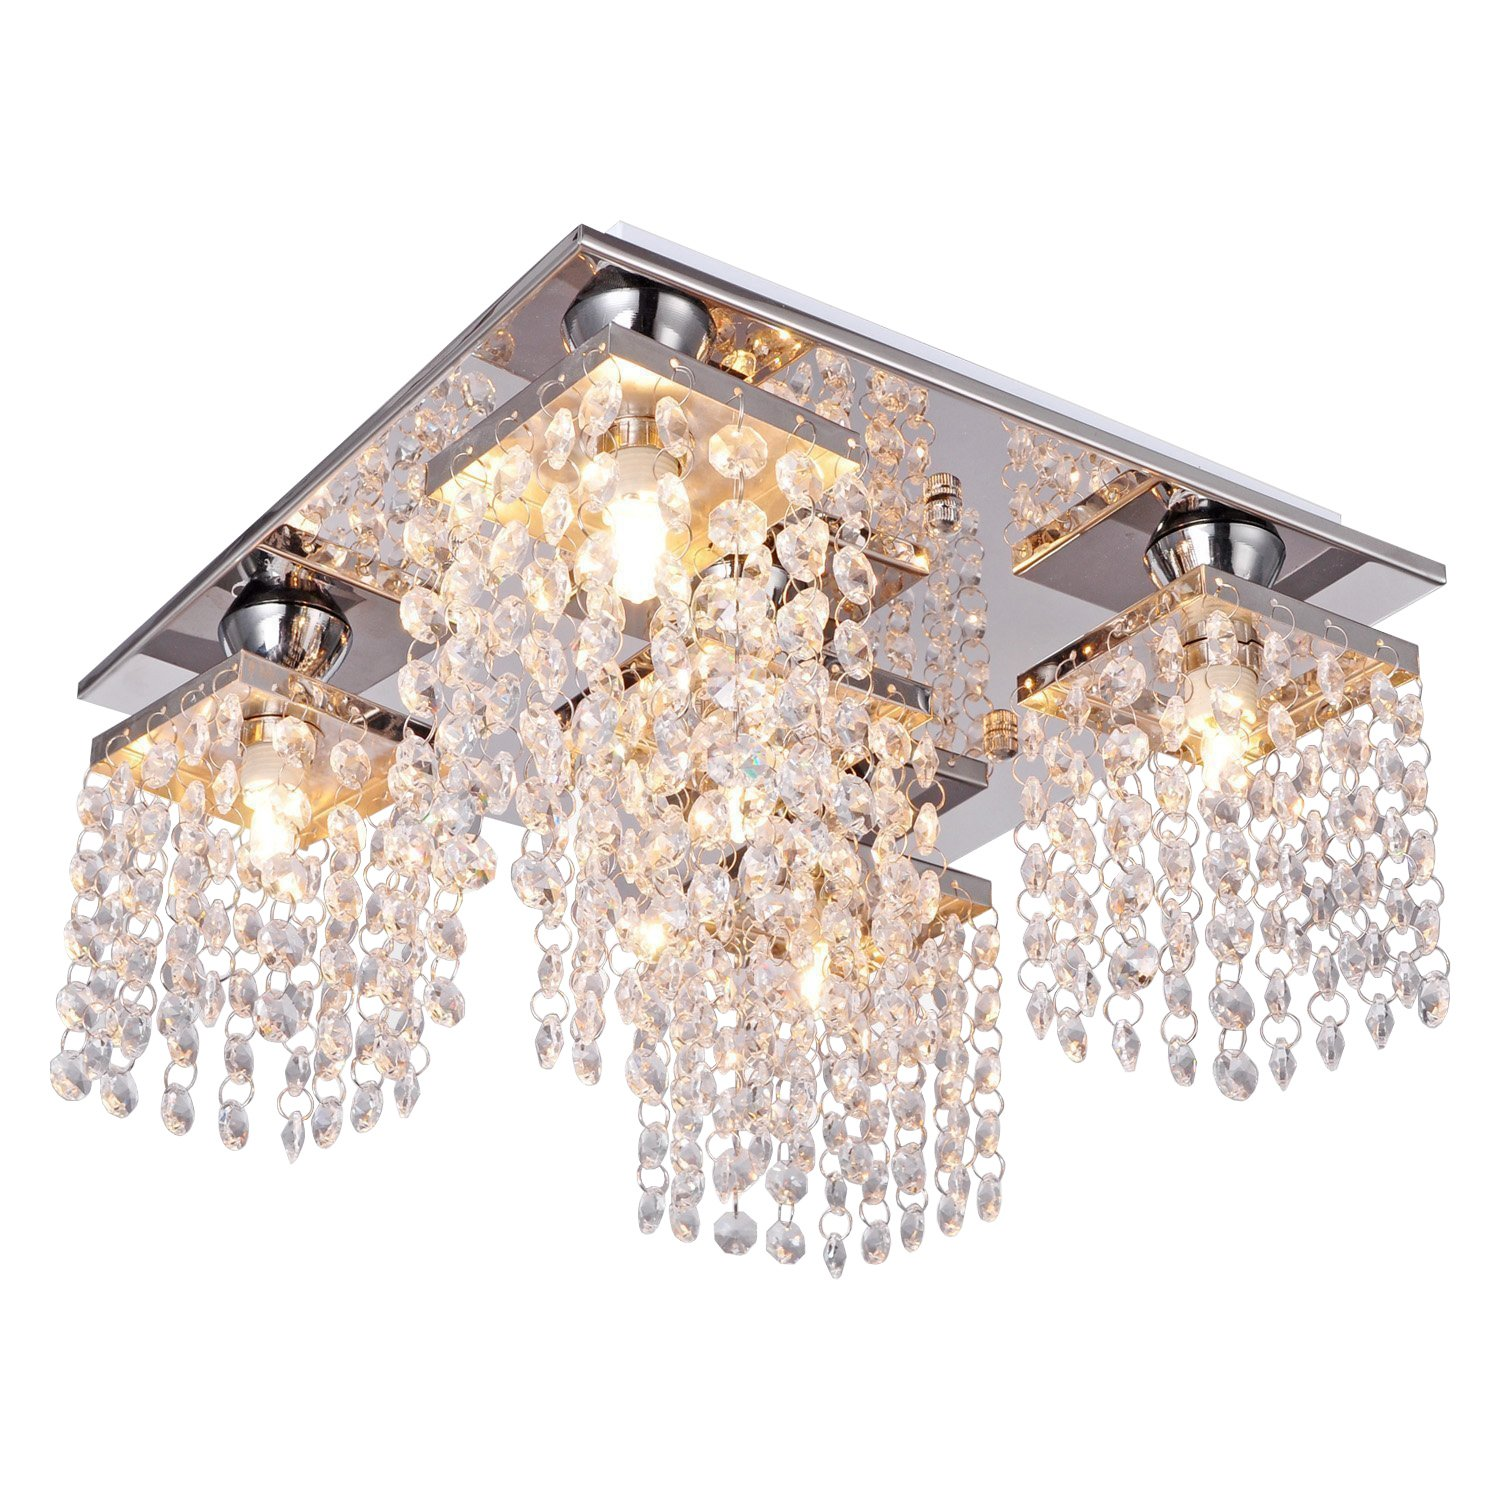 Lightess Square Chandelier with Crystals 5 Lights Modern Flush Mount Ceiling Light Fixture, DY121 by LIGHTESS